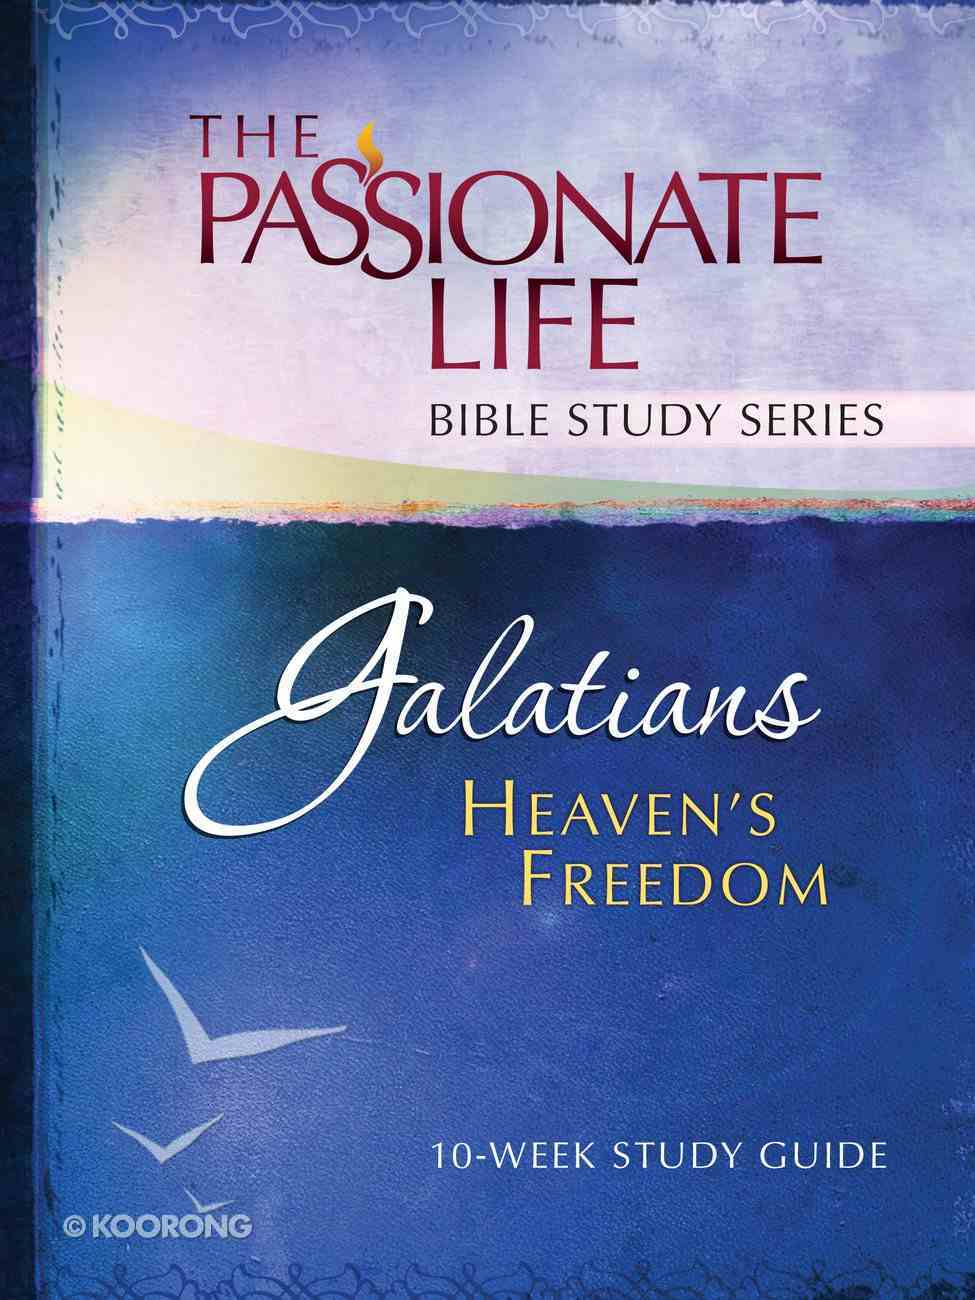 Galatians - Heaven's Freedom (The Passionate Life Bible Study Series) Paperback